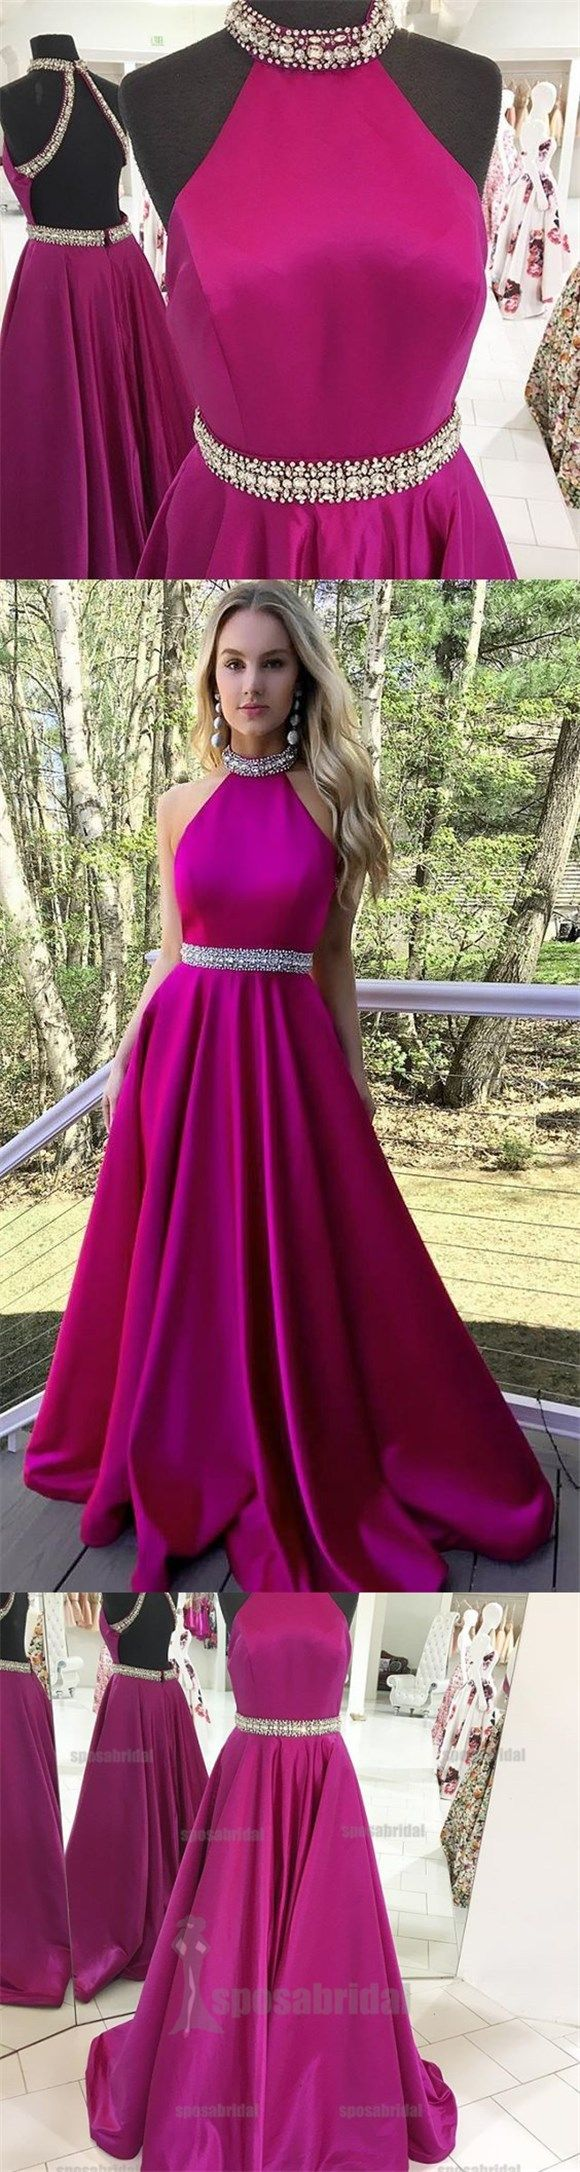 A-line High Neck Stunning Open Back Elegant Gorgeous Fashion Long Party Prom Dresses, PD0575